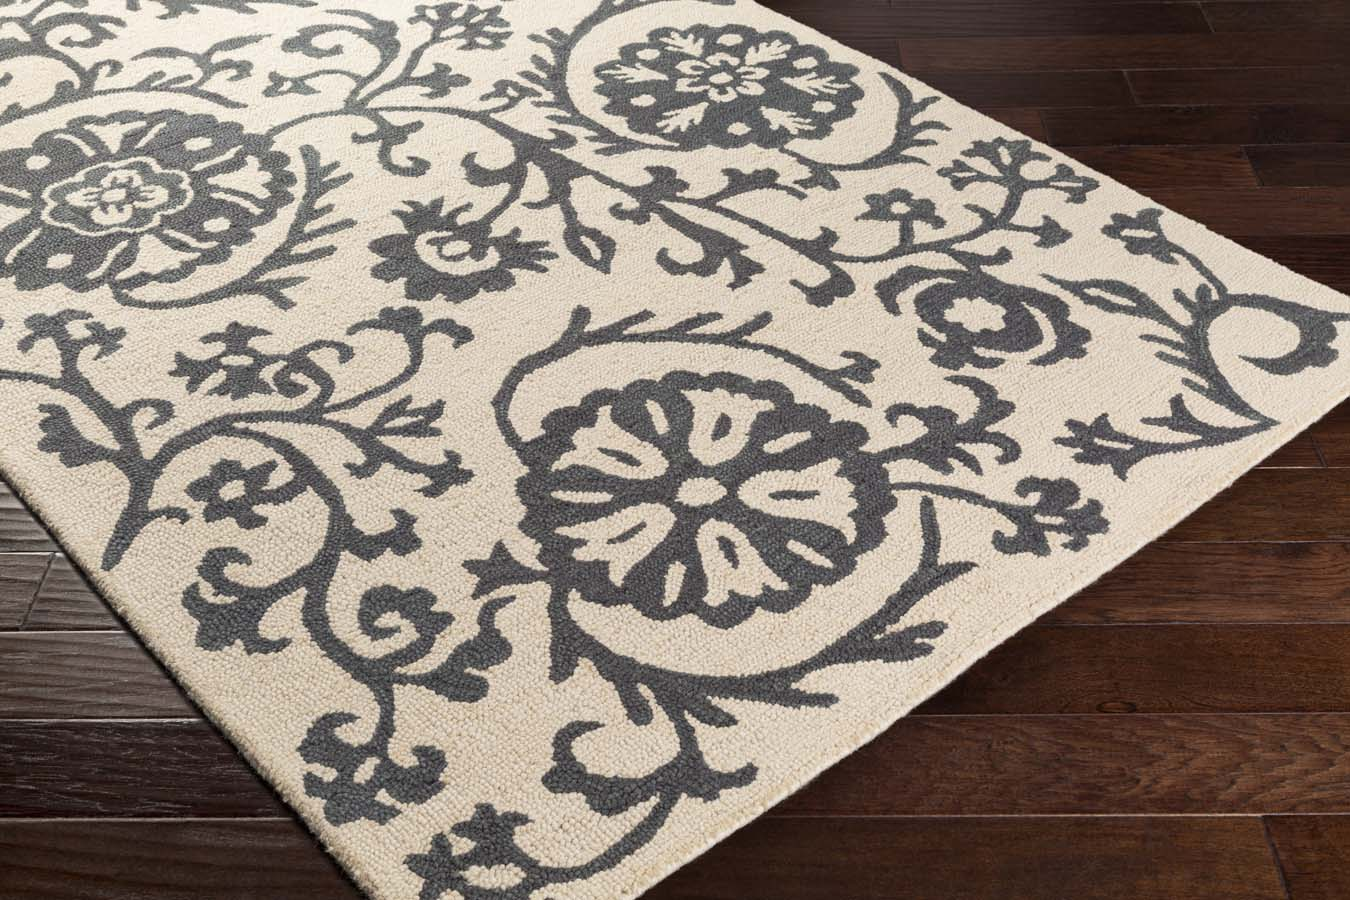 Artistic Weavers RHODES RDS-2312 Maggie Charcoal Grey/Off-White Rug